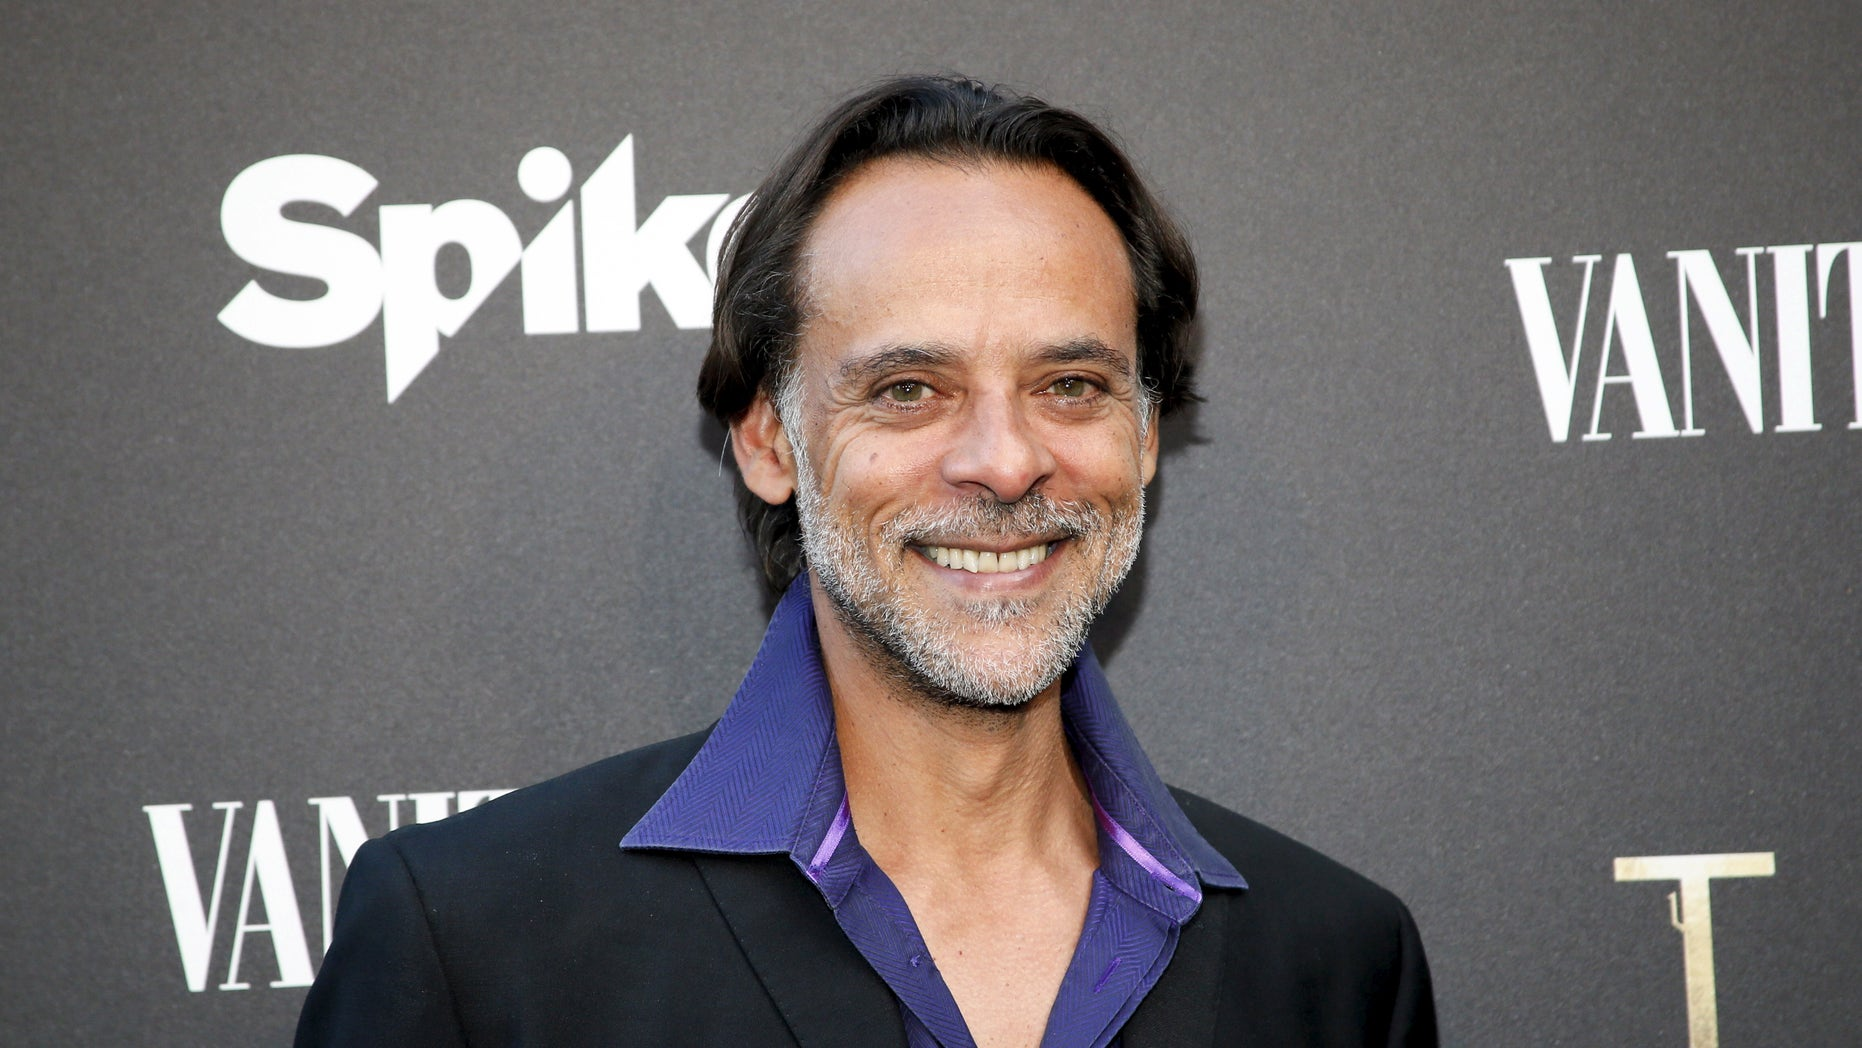 """Cast member Alexander Siddig poses at a cocktail party hosted by Vanity Fair and Spike TV to celebrate Spike's new event series """"Tut,"""" at Chateau Marmont in West Hollywood, California, July 8, 2015. REUTERS/Danny Moloshok - RTX1JN5E"""